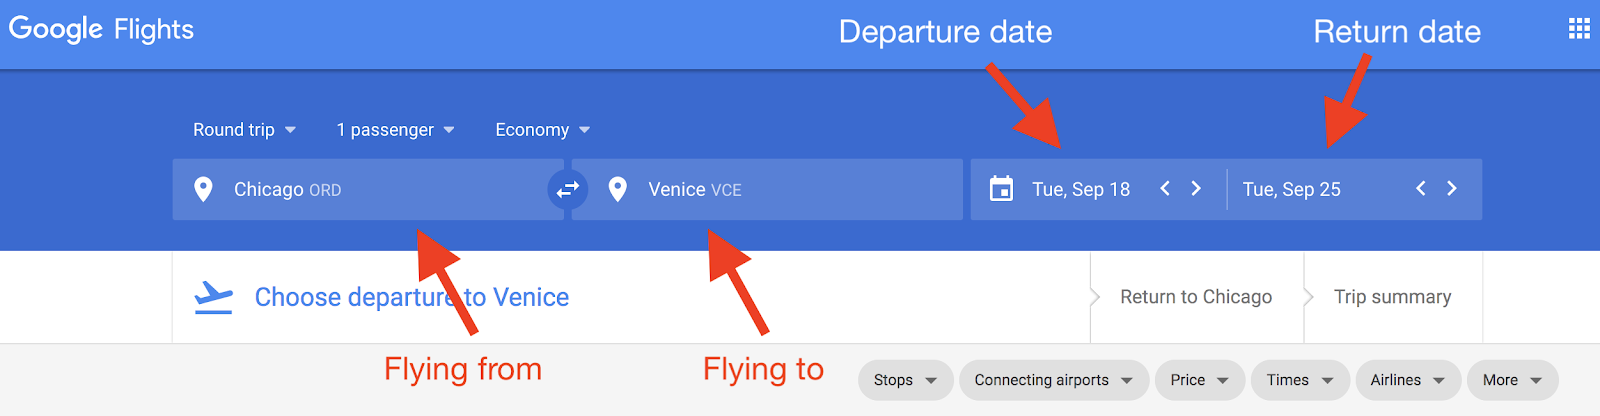 How to select departure and arrival airports cities on Google Flights